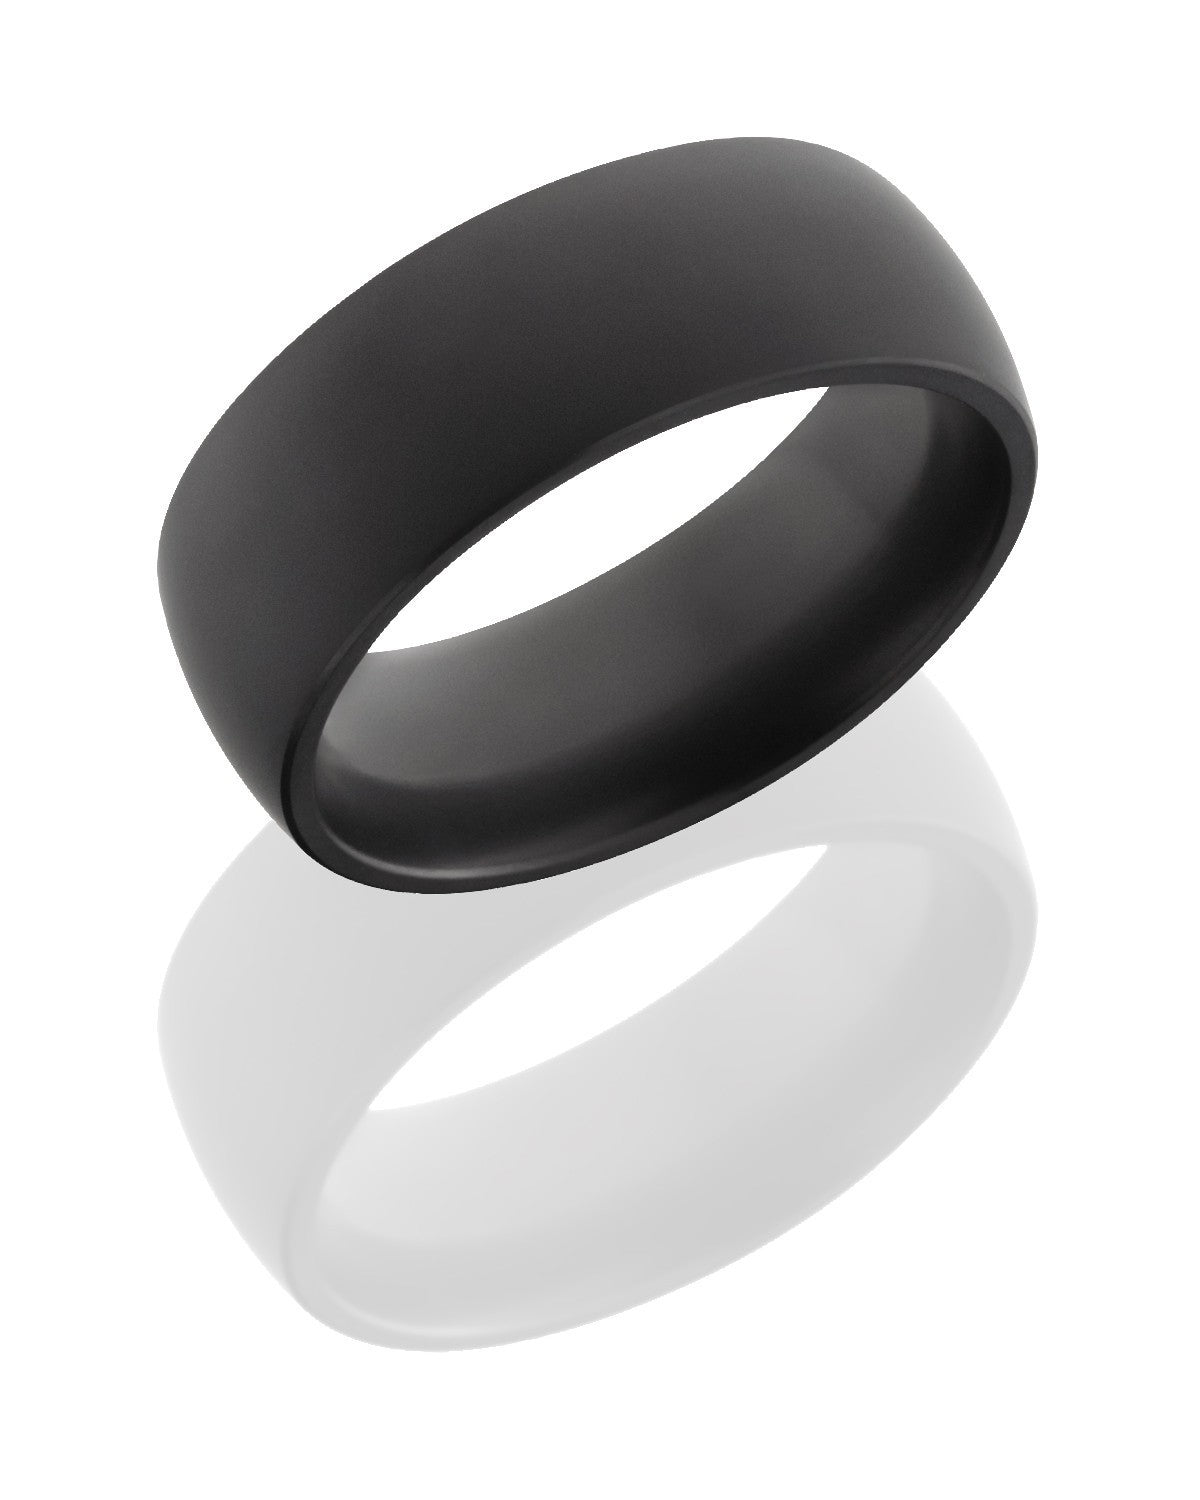 Elysium 8mm Wide Solid Diamond Domed Wedding Band with Matte Finish